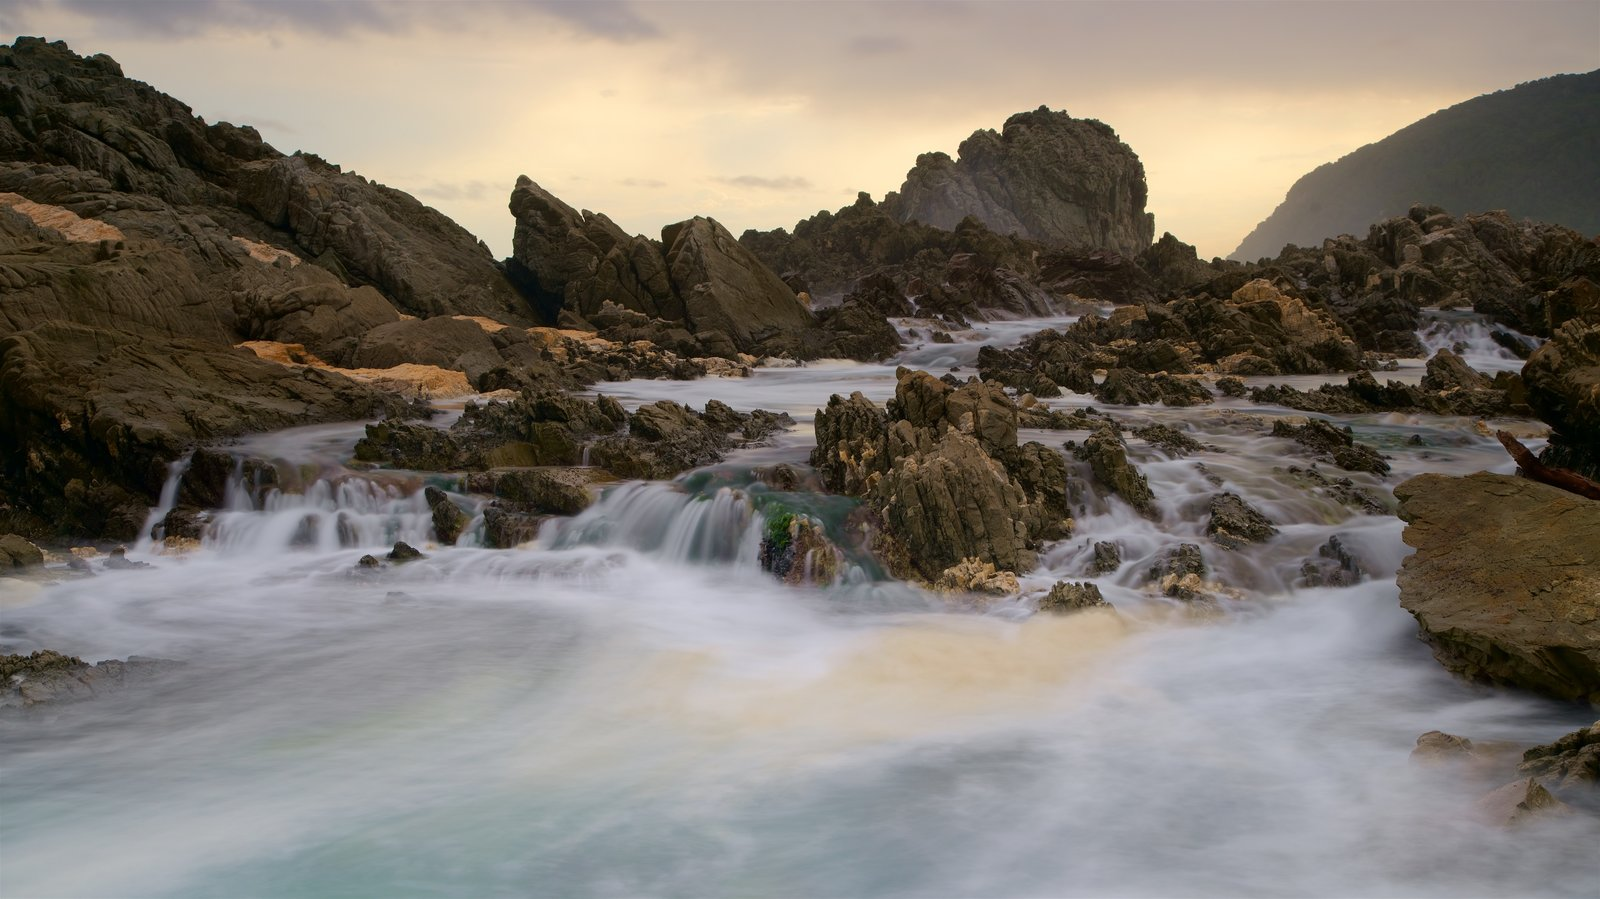 Tsitsikamma National Park which includes rocky coastline and waves